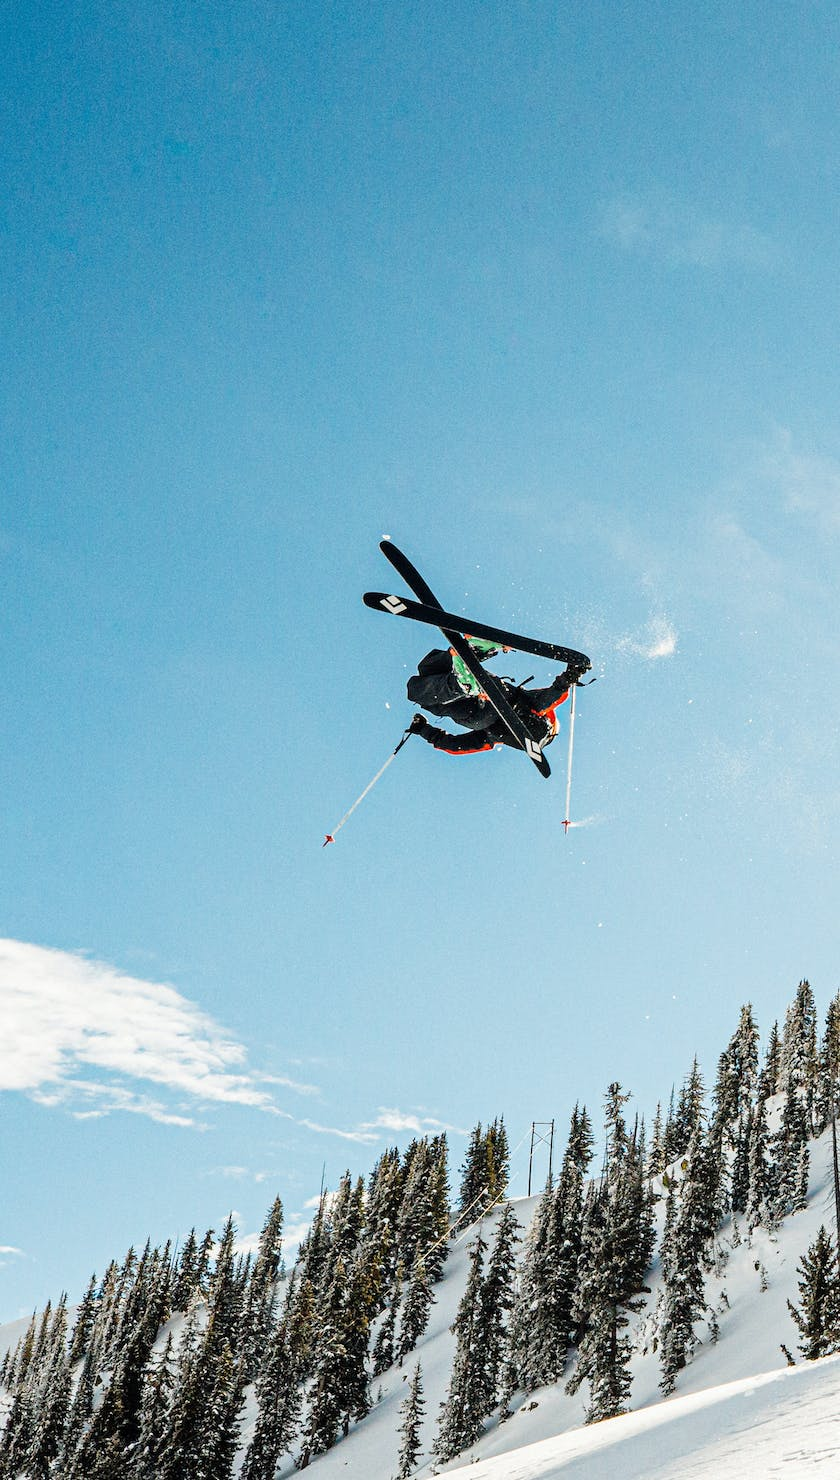 Get Up To Get Down: Parkin Costain Rips Powder in Jackson Hole